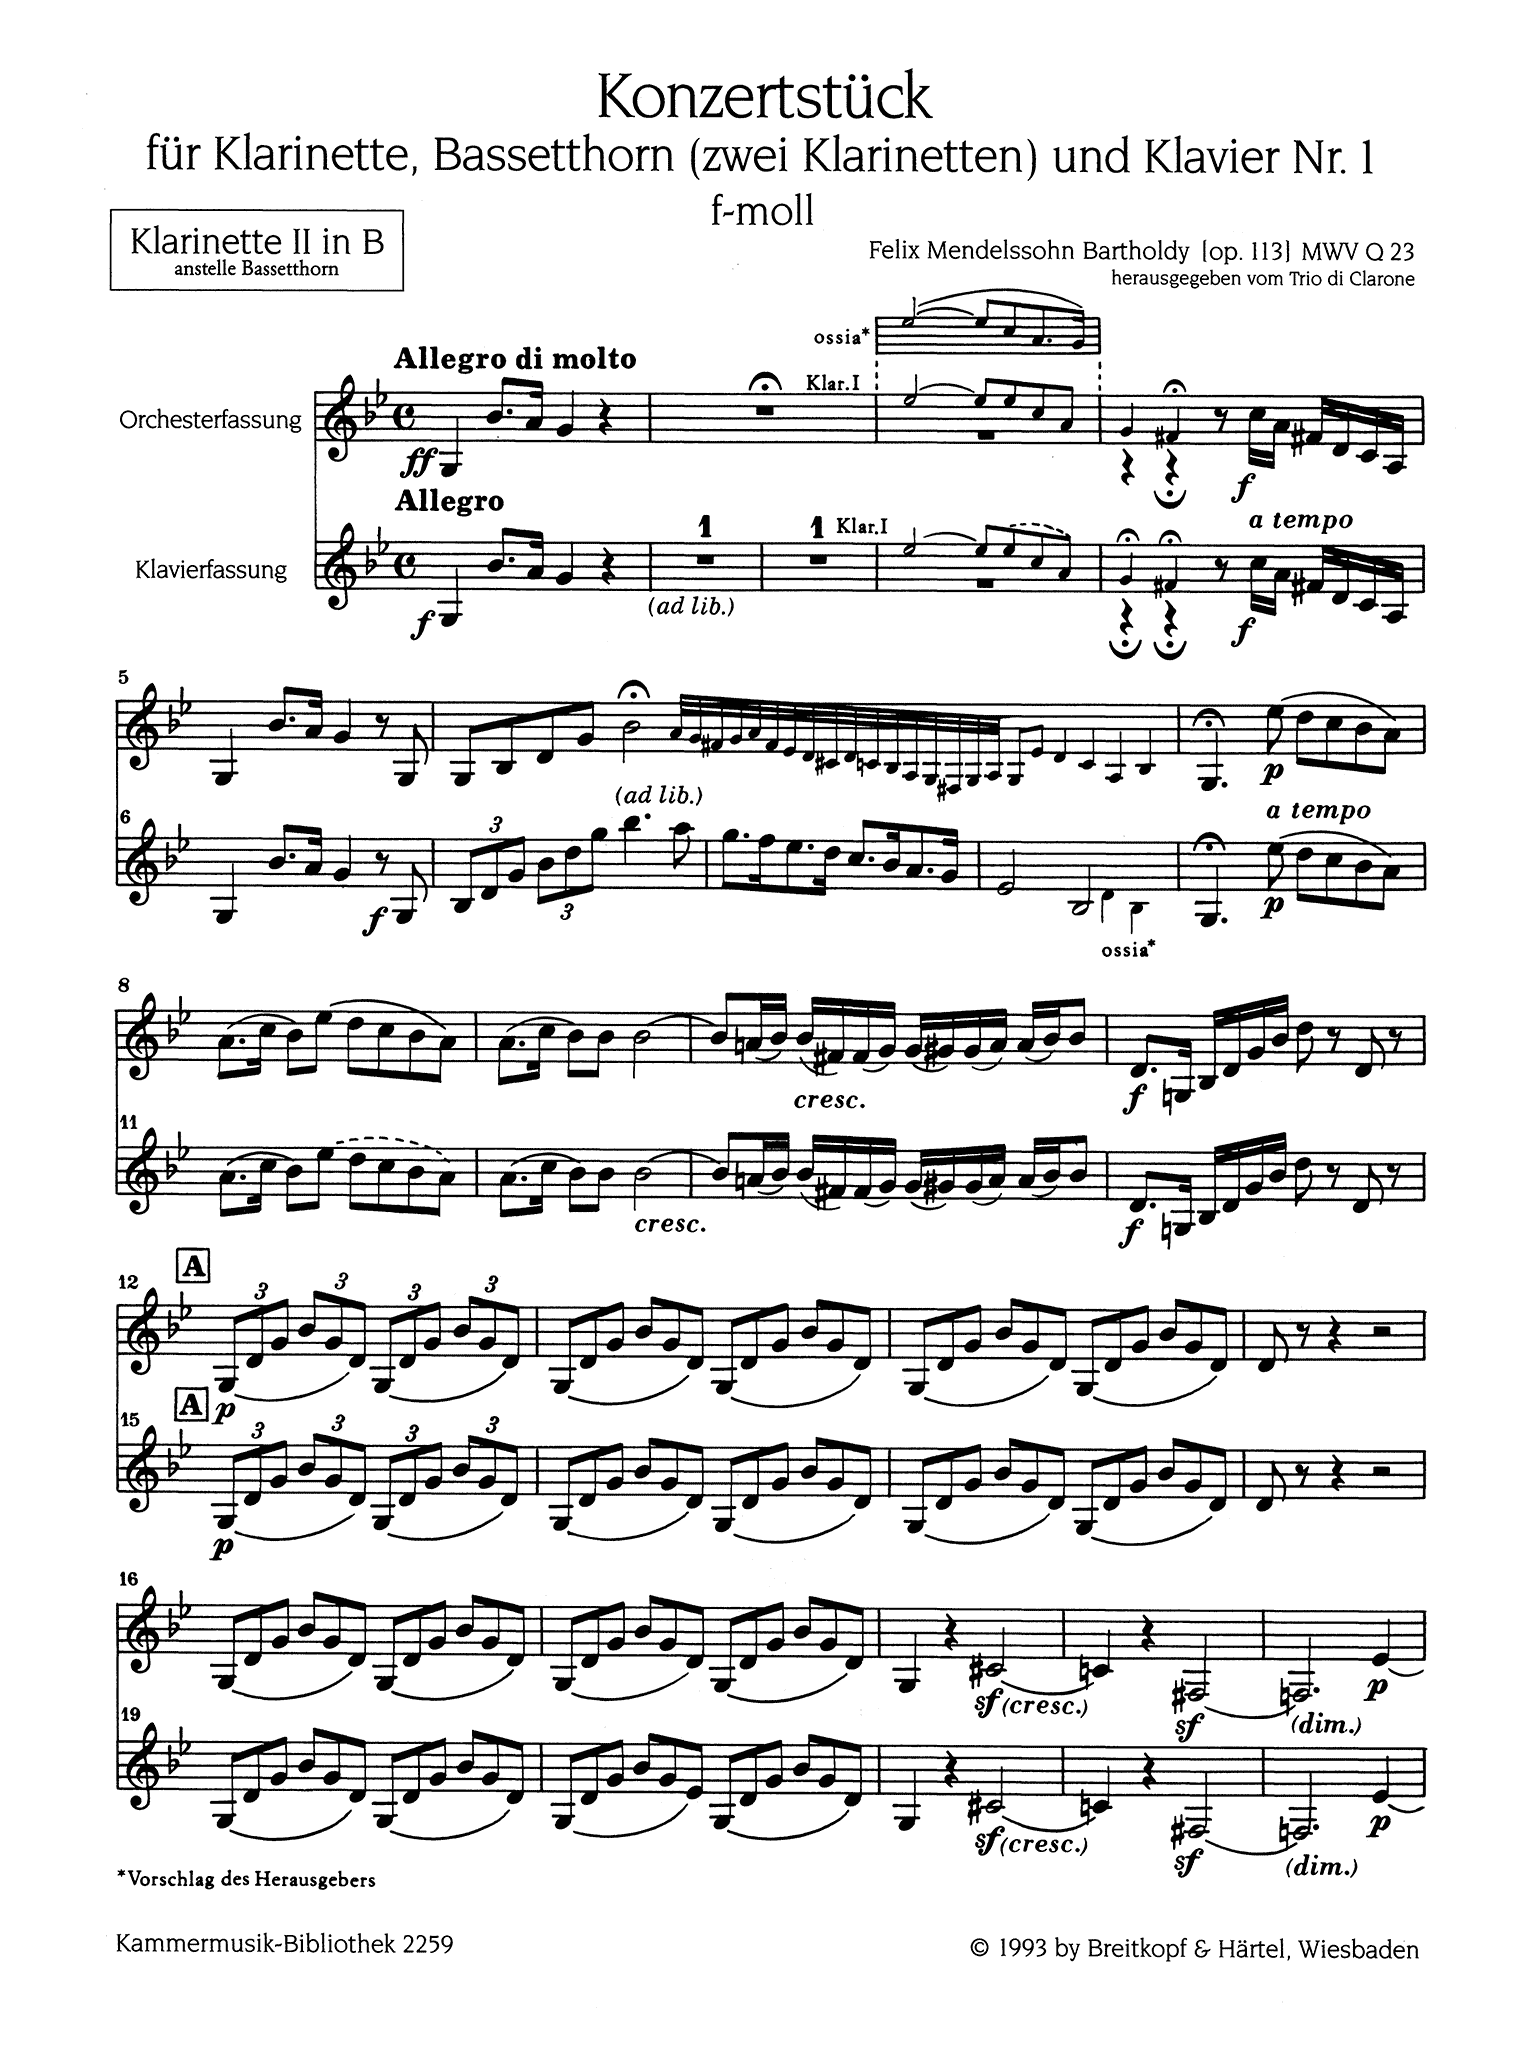 Concertpiece No. 1 in F Minor, Op. 113 B-flat Clarinet Second part